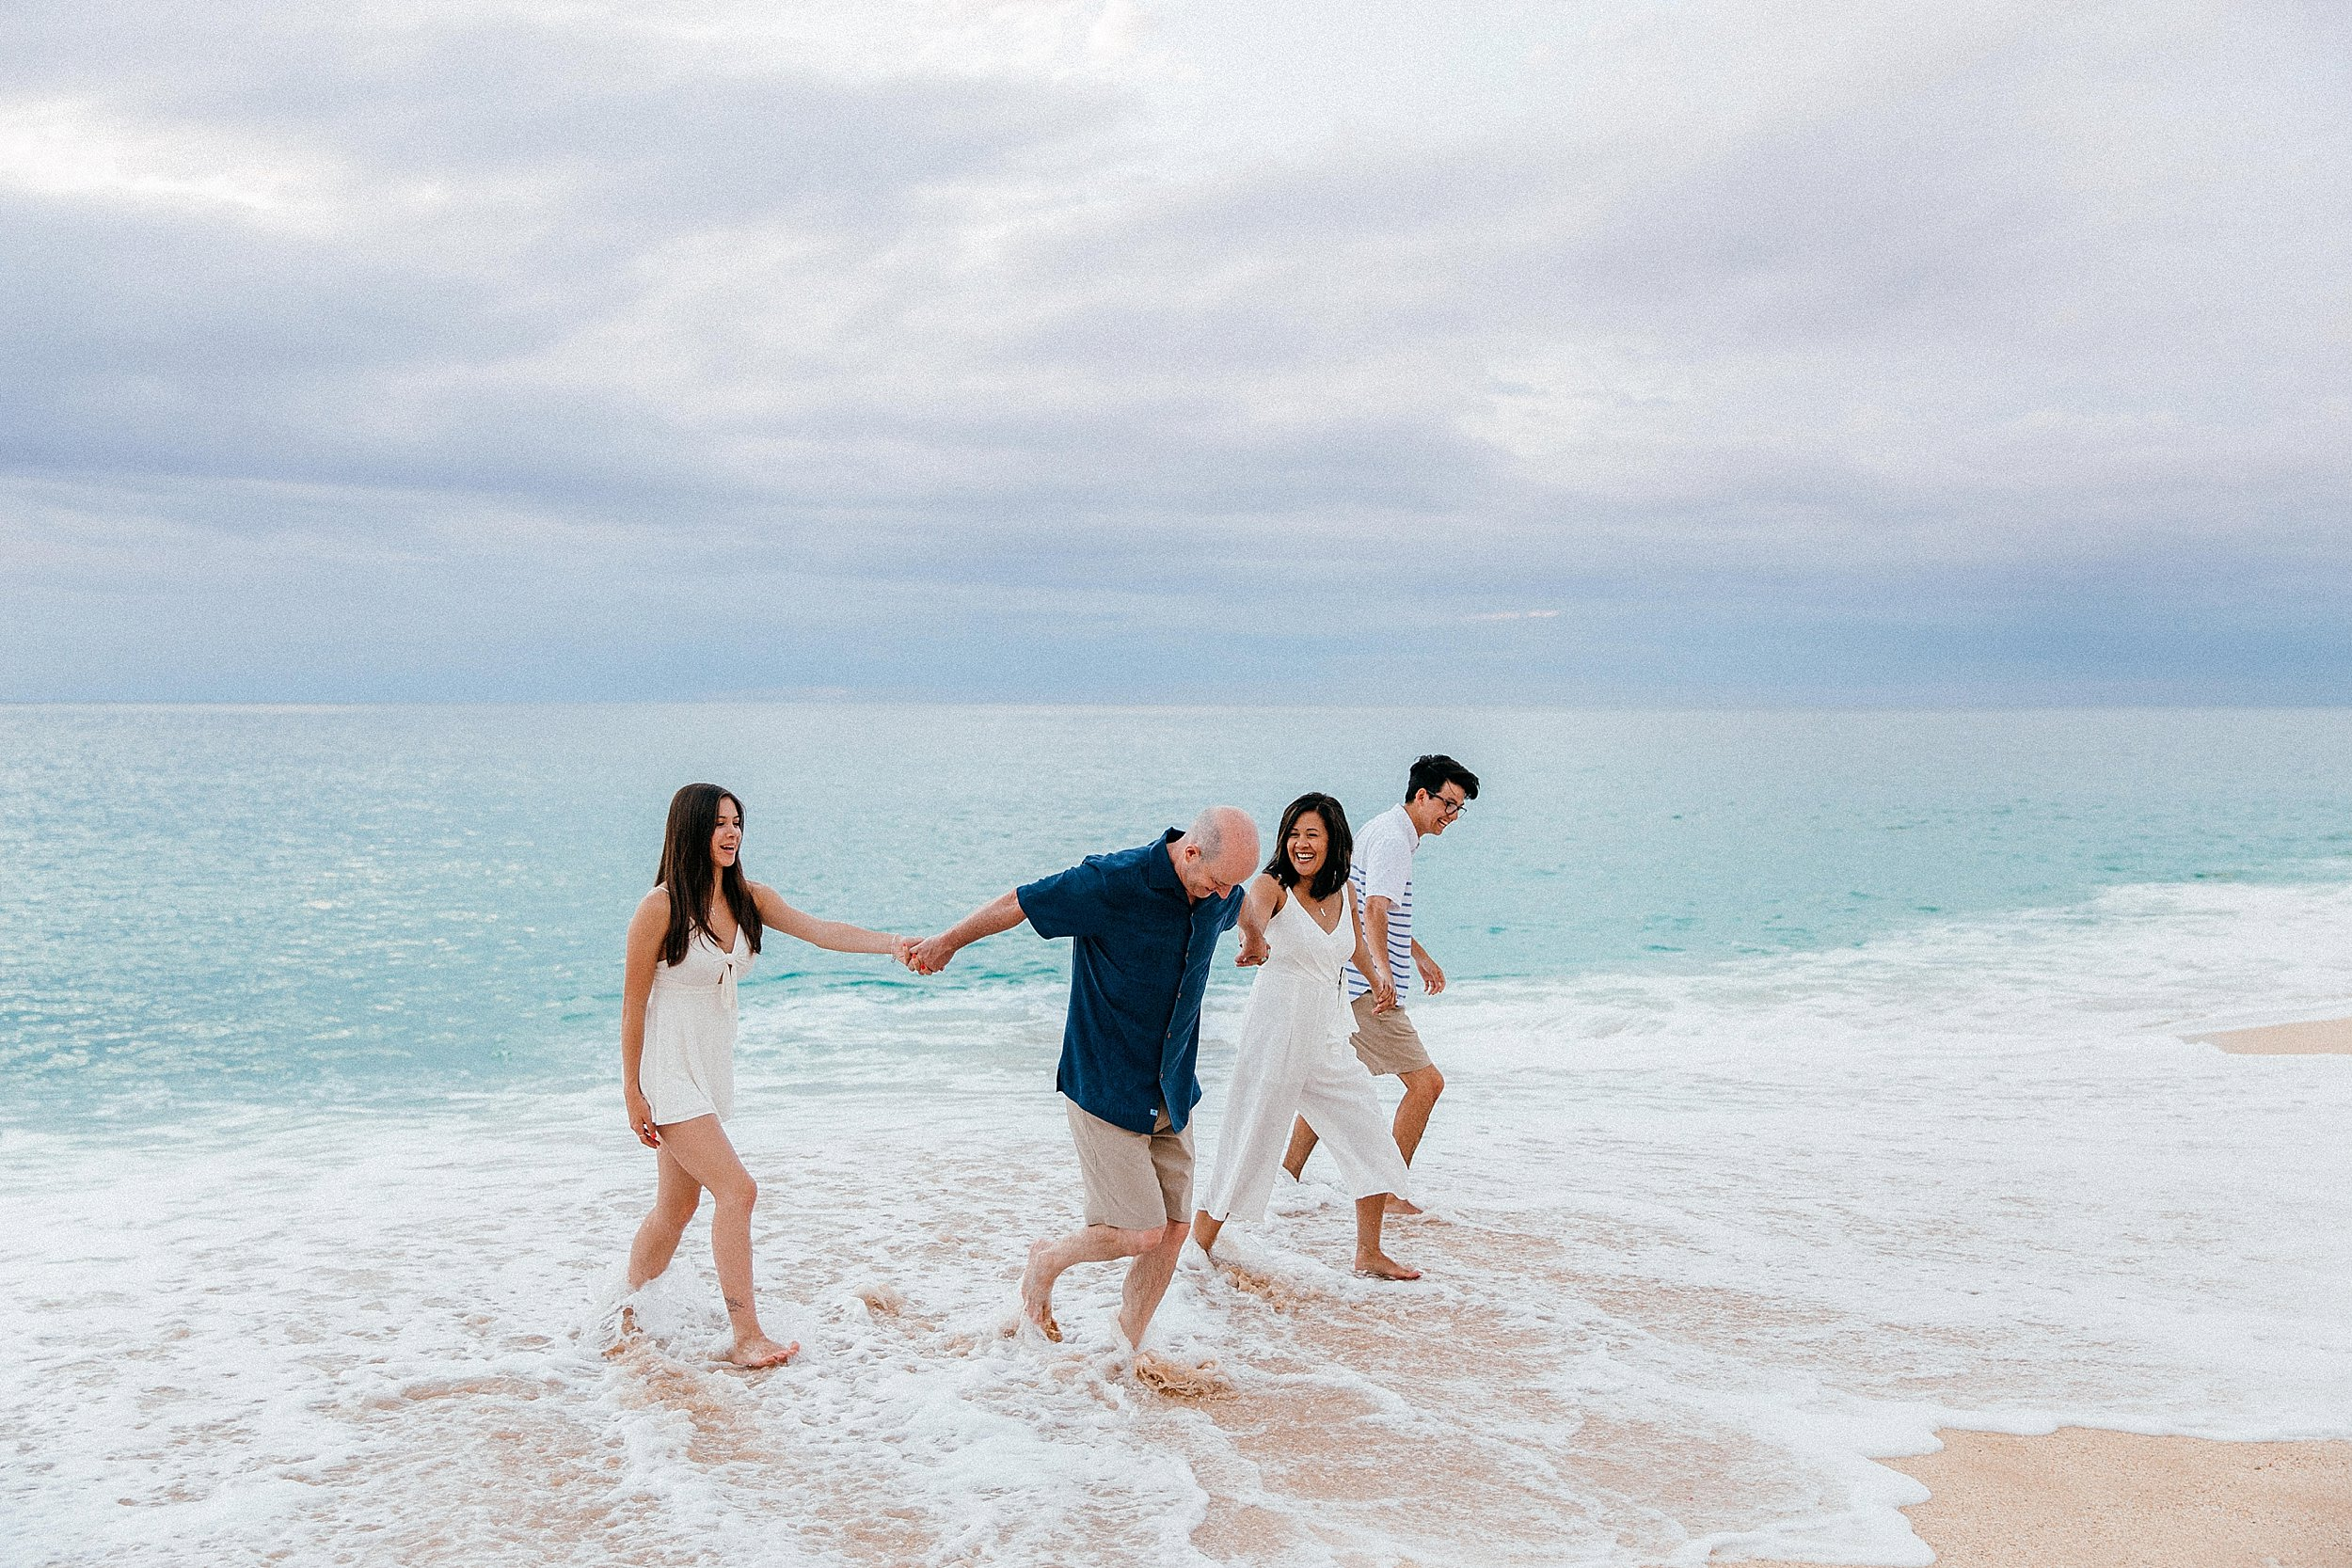 North Shore family photographs during vacation in Hawaii.